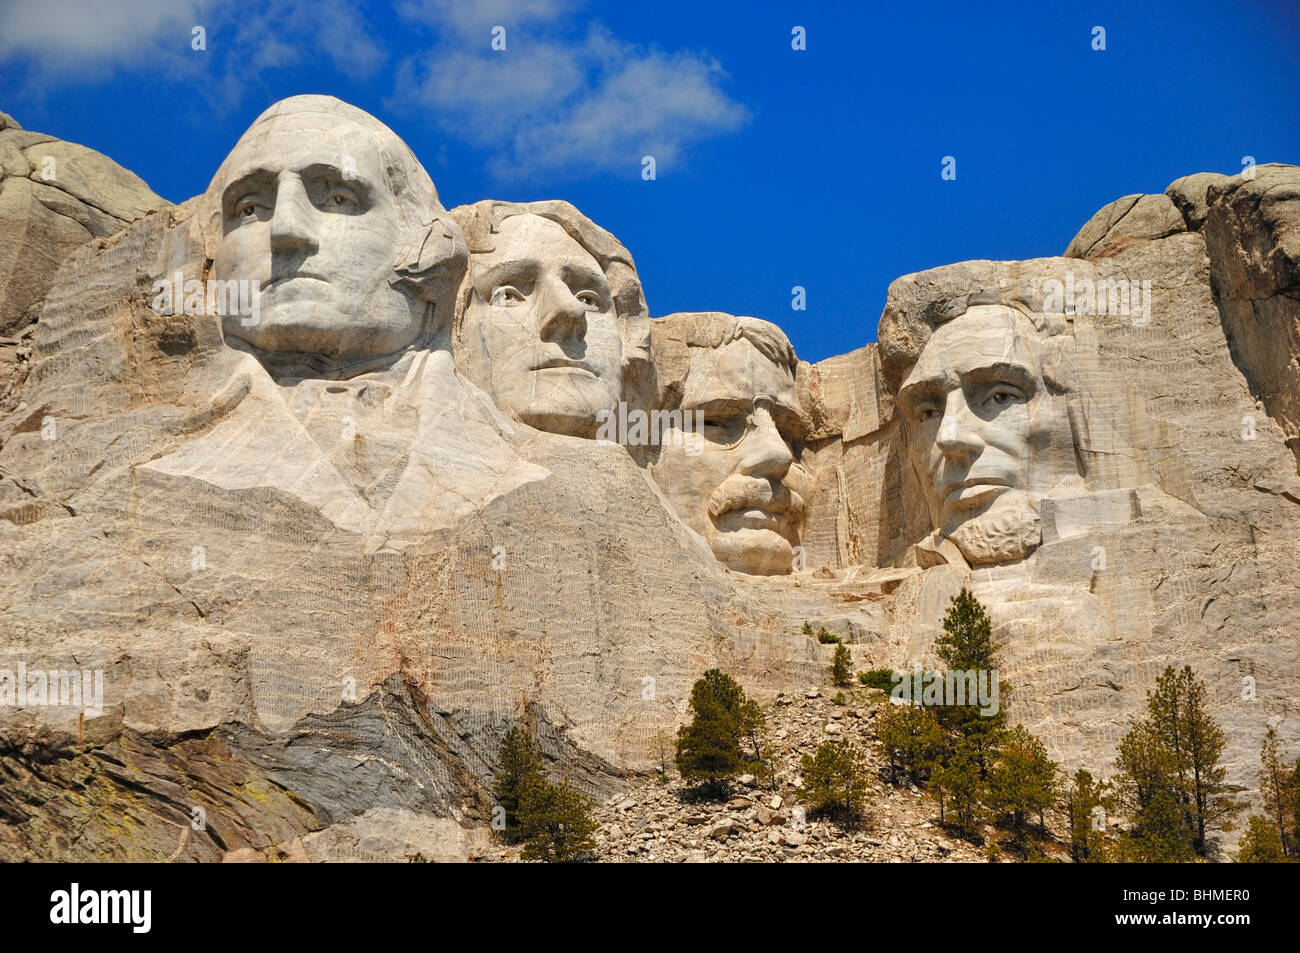 The four American Presidents carved in rock at Mount Rushmore National Monument, South Dakota, USA - Stock Image